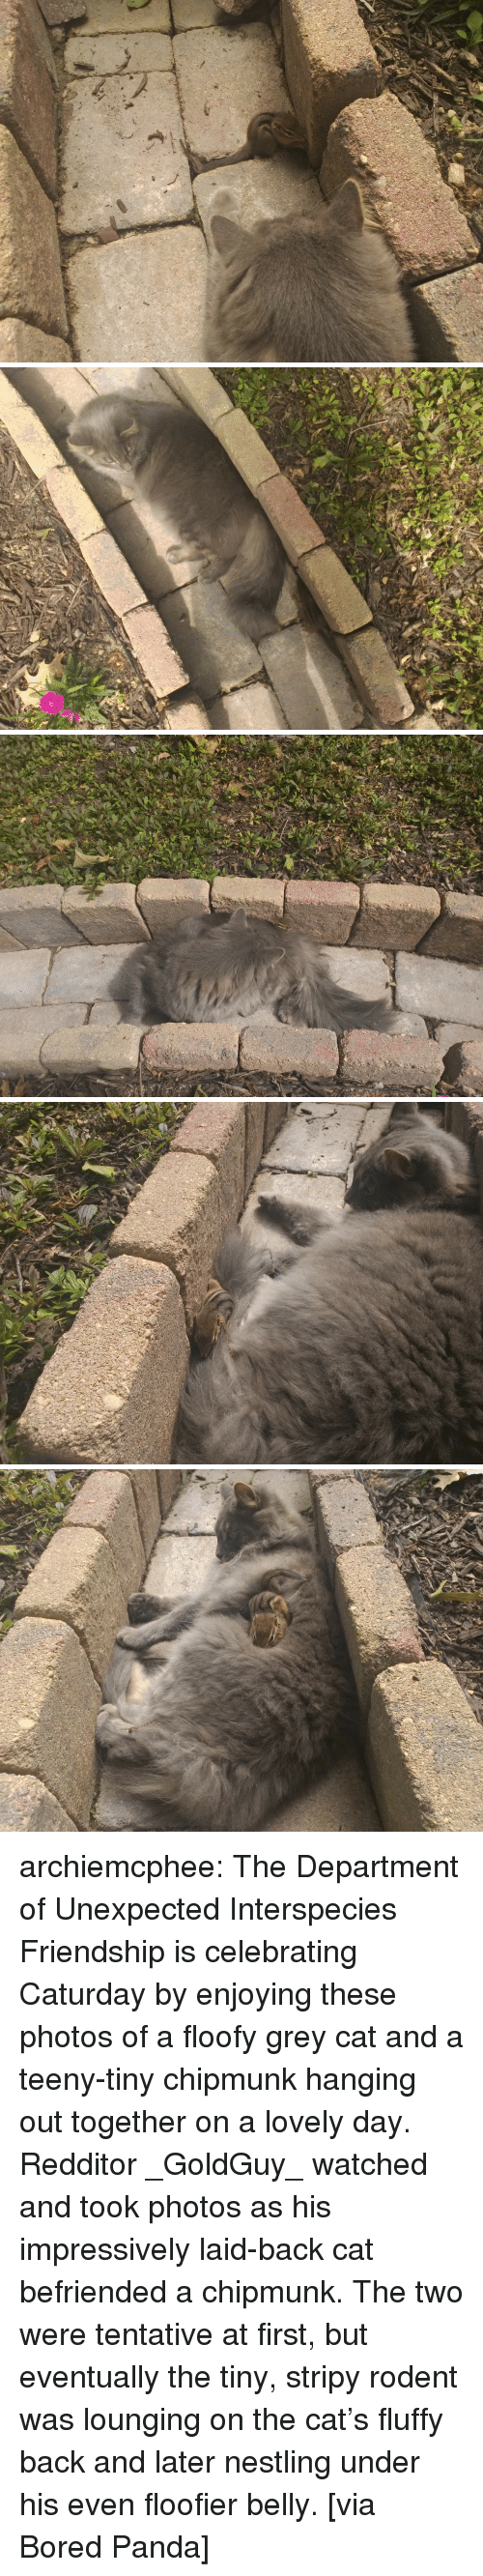 chipmunk: archiemcphee: The Department of Unexpected Interspecies Friendship is celebrating Caturday by enjoying these photos of a floofy grey cat and a teeny-tiny chipmunk hanging out together on a lovely day. Redditor _GoldGuy_ watched and took photos as his impressively laid-back cat befriended a chipmunk. The two were tentative at first, but eventually the tiny, stripy rodent was lounging on the cat's fluffy back and later nestling under his even floofier belly. [via Bored Panda]